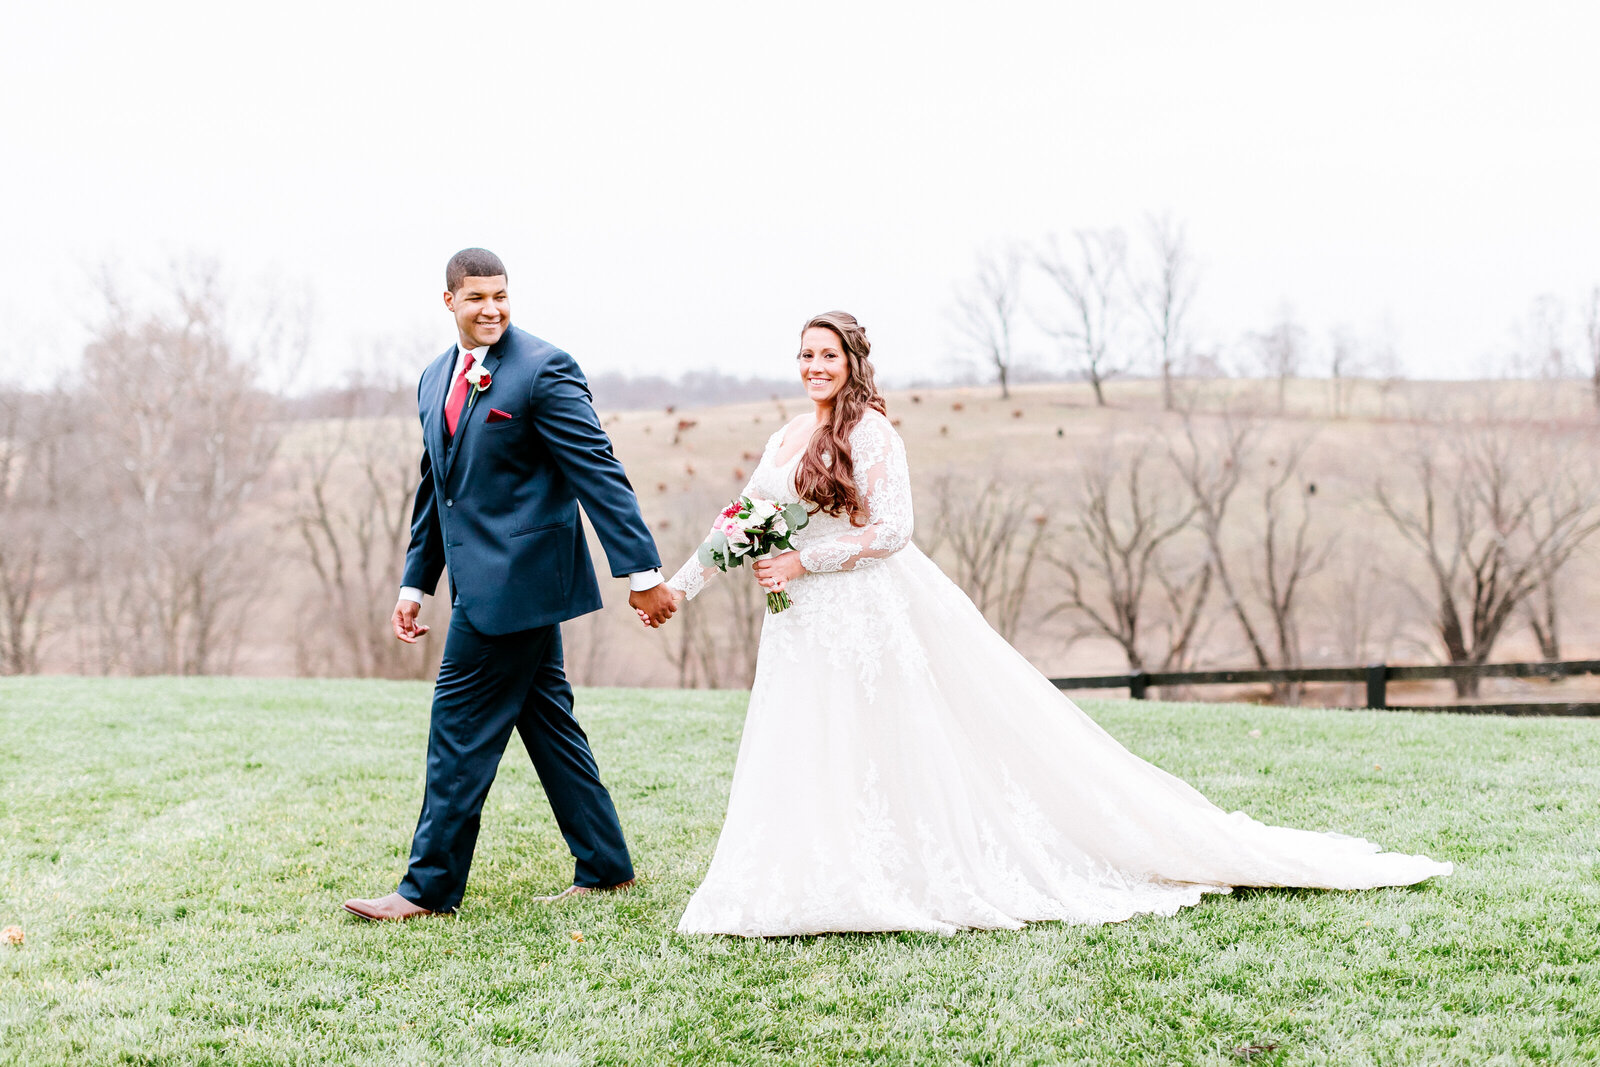 danielleryanmarried2019-347